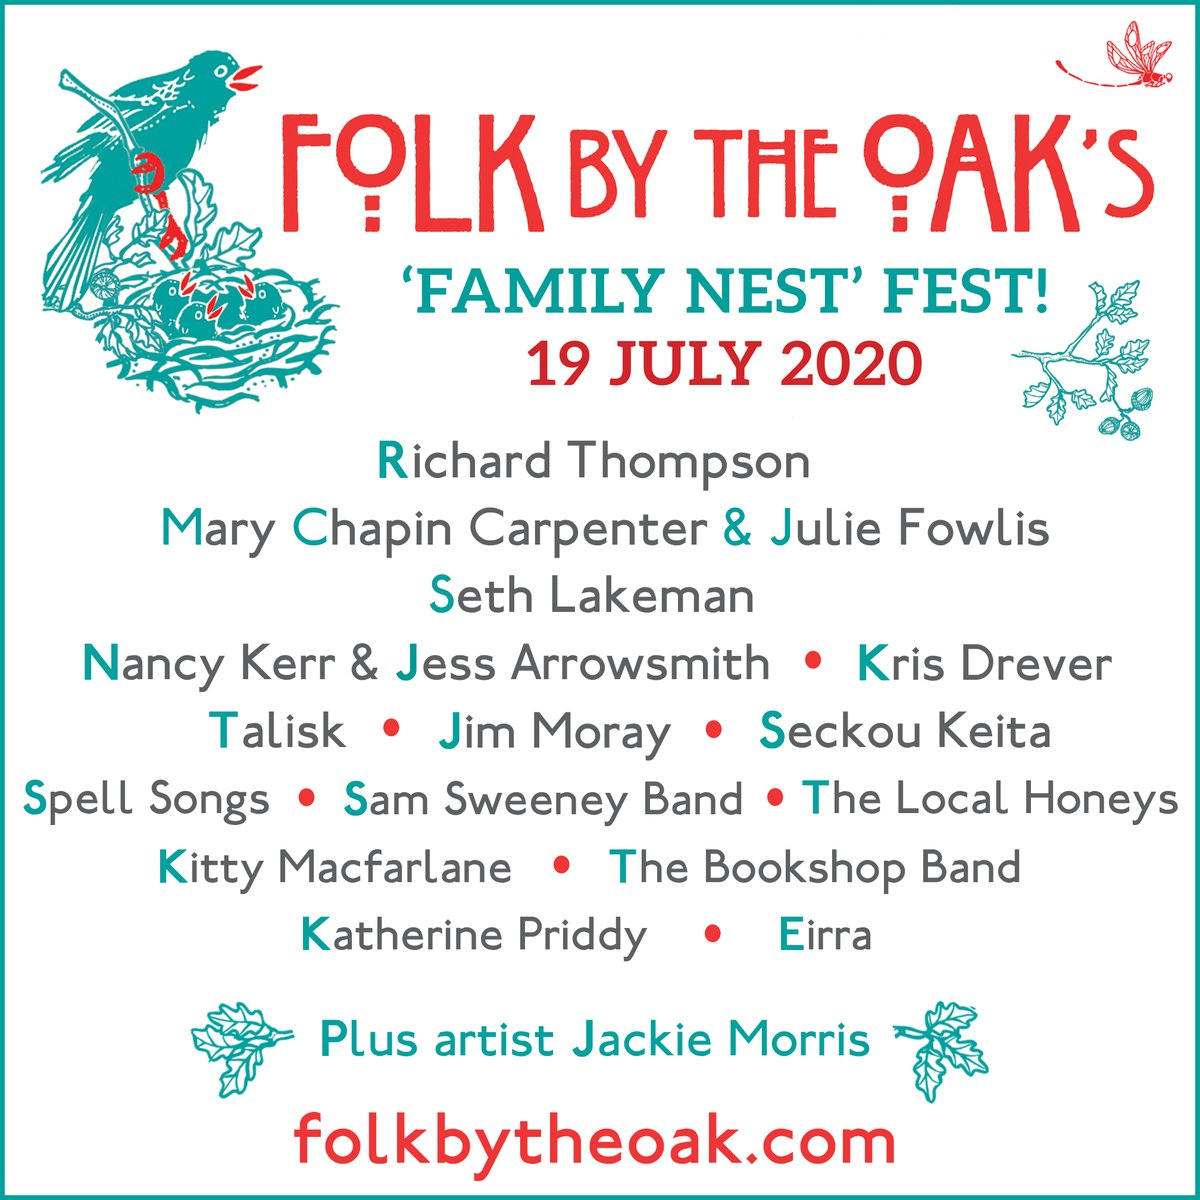 FULL LINE-UP! It gives us huge pleasure to announce @M_CCarpenter & @juliefowlis,+@SethLakemanNews to complete the 'line-up of headliners' for 'Family Nest' Fest - our virtual festival in aid of musicians & @Willow_Fdn on Sunday 19 July at 5pm. Donate now https://t.co/XhJXjdcebm https://t.co/OQeiODygX0